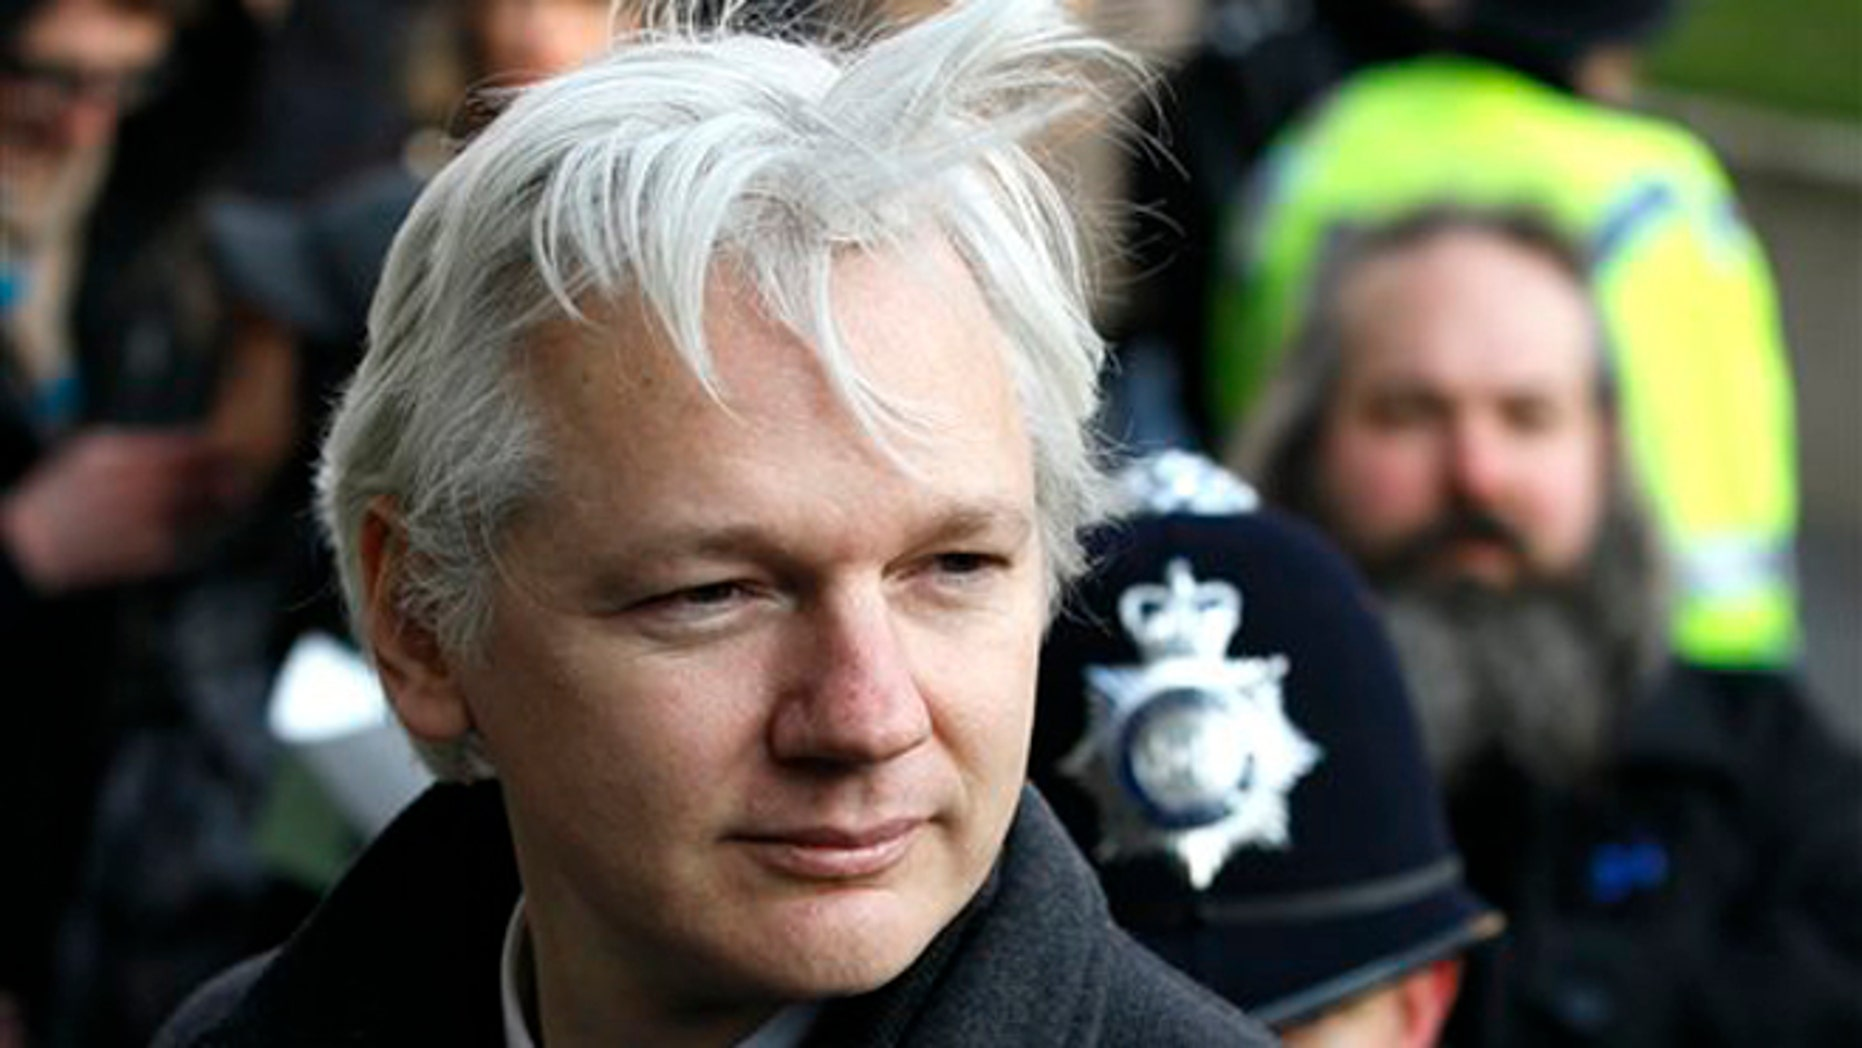 JUNE 28, 2012: British authorities have demanded Julian Assange report to station in order to begin his extradition process to Sweden.